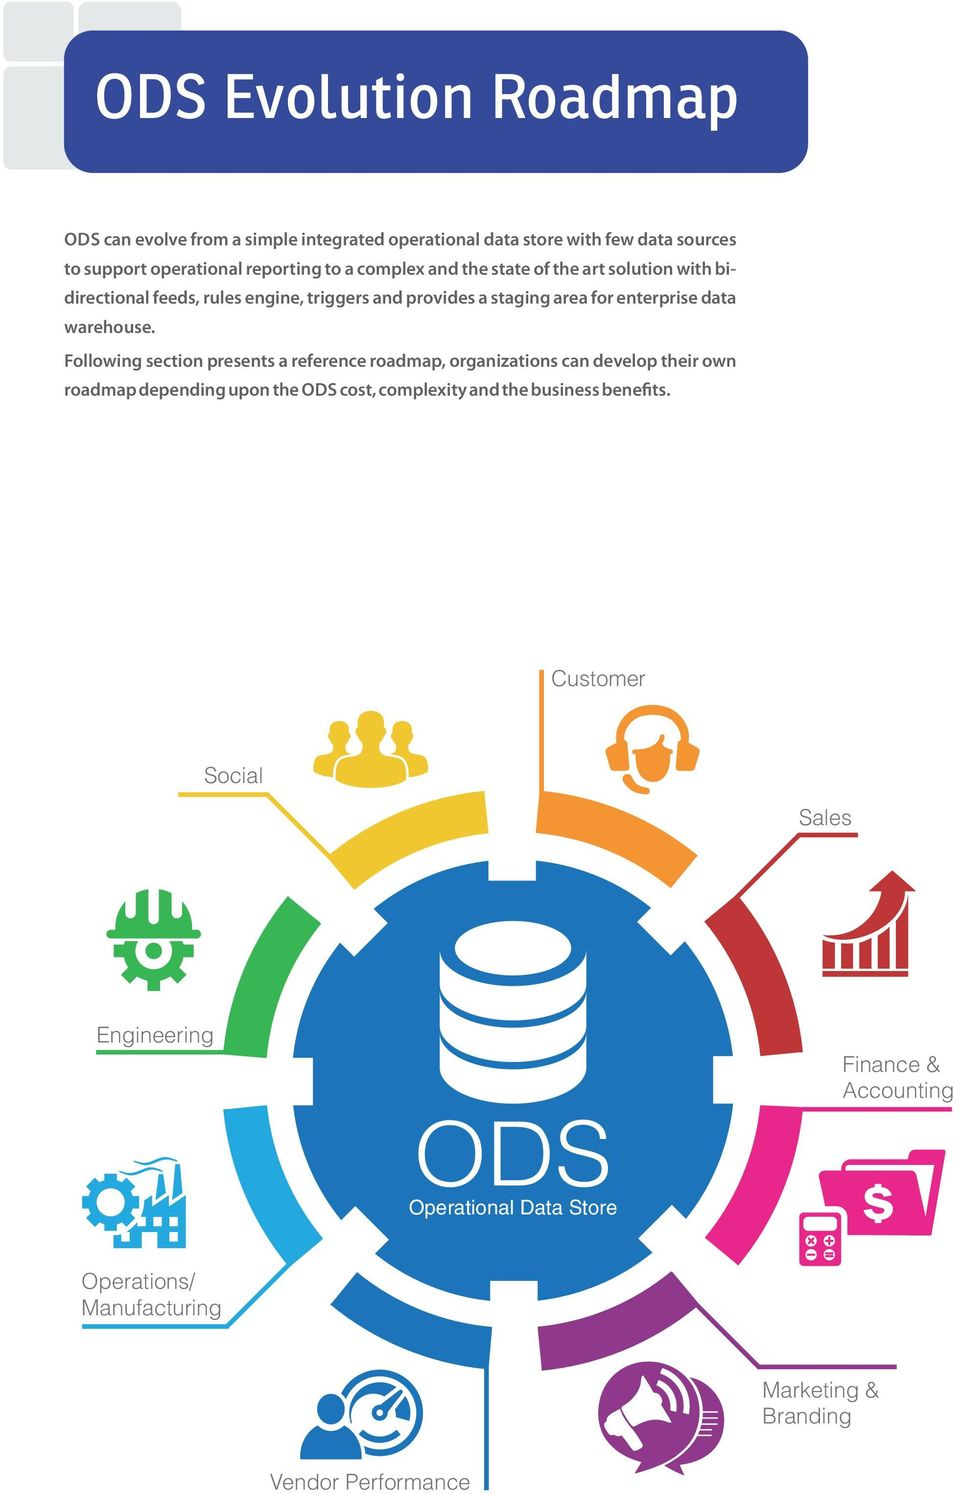 Following section presents a reference roadmap, organizations can develop their own roadmap depending upon the ODS cost, complexity and the business